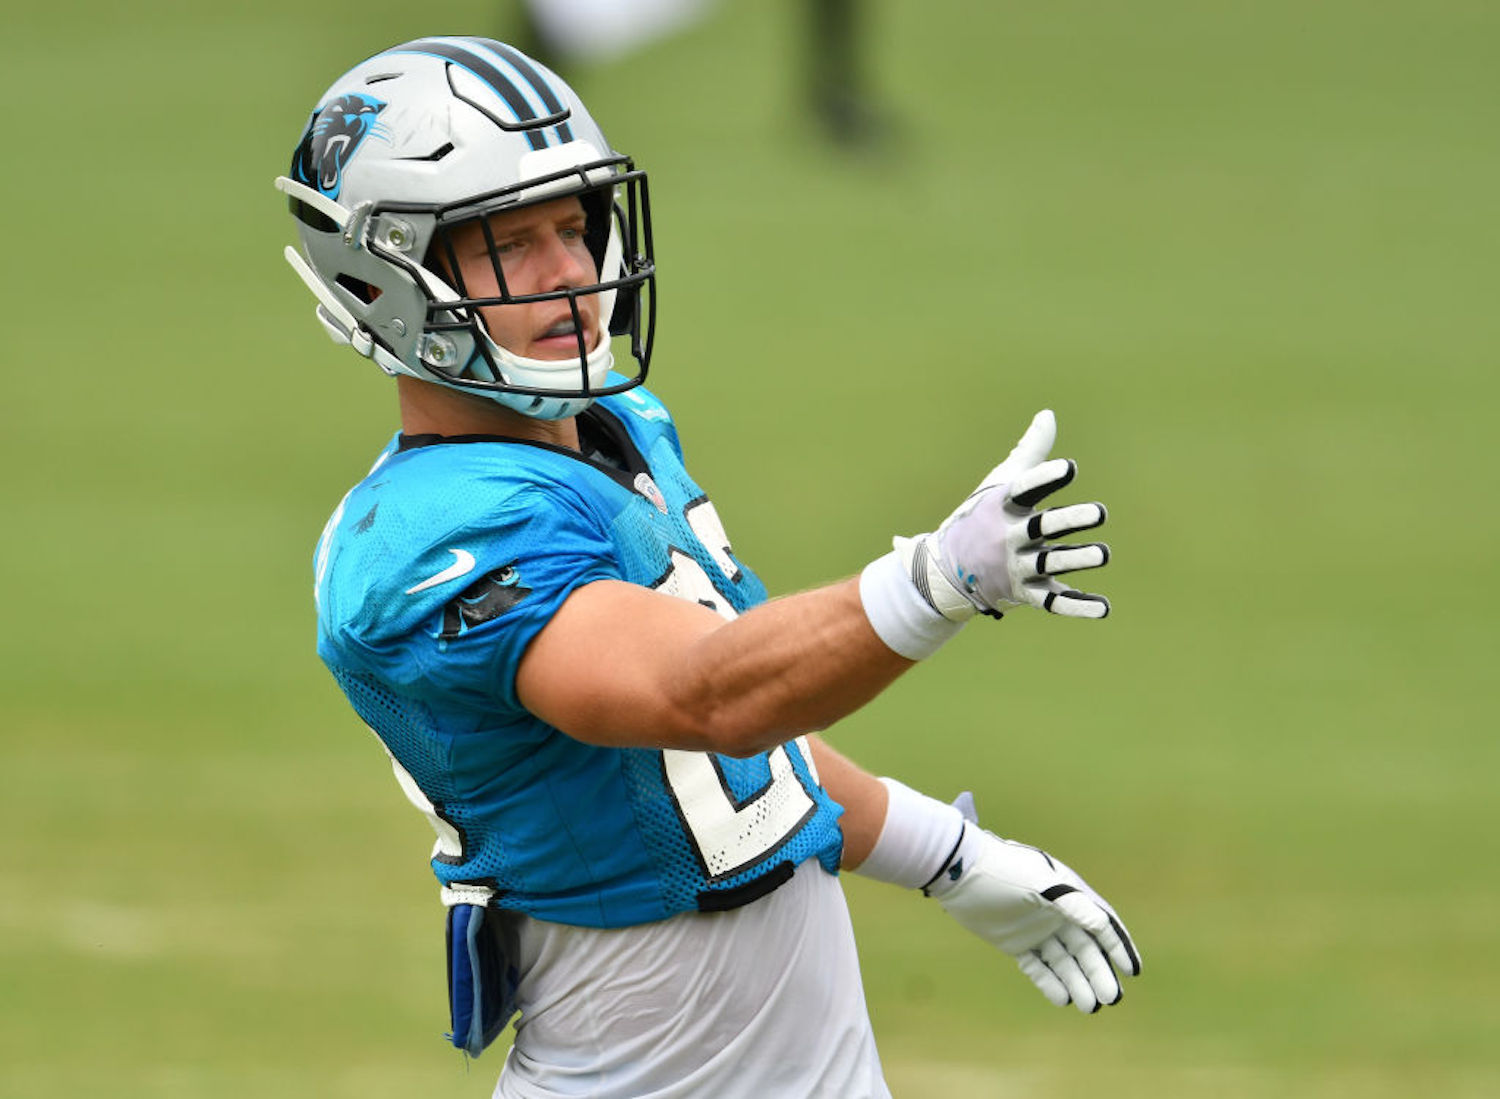 The Carolina Panthers Just Got Some Encouraging News About Their $64 Million Star